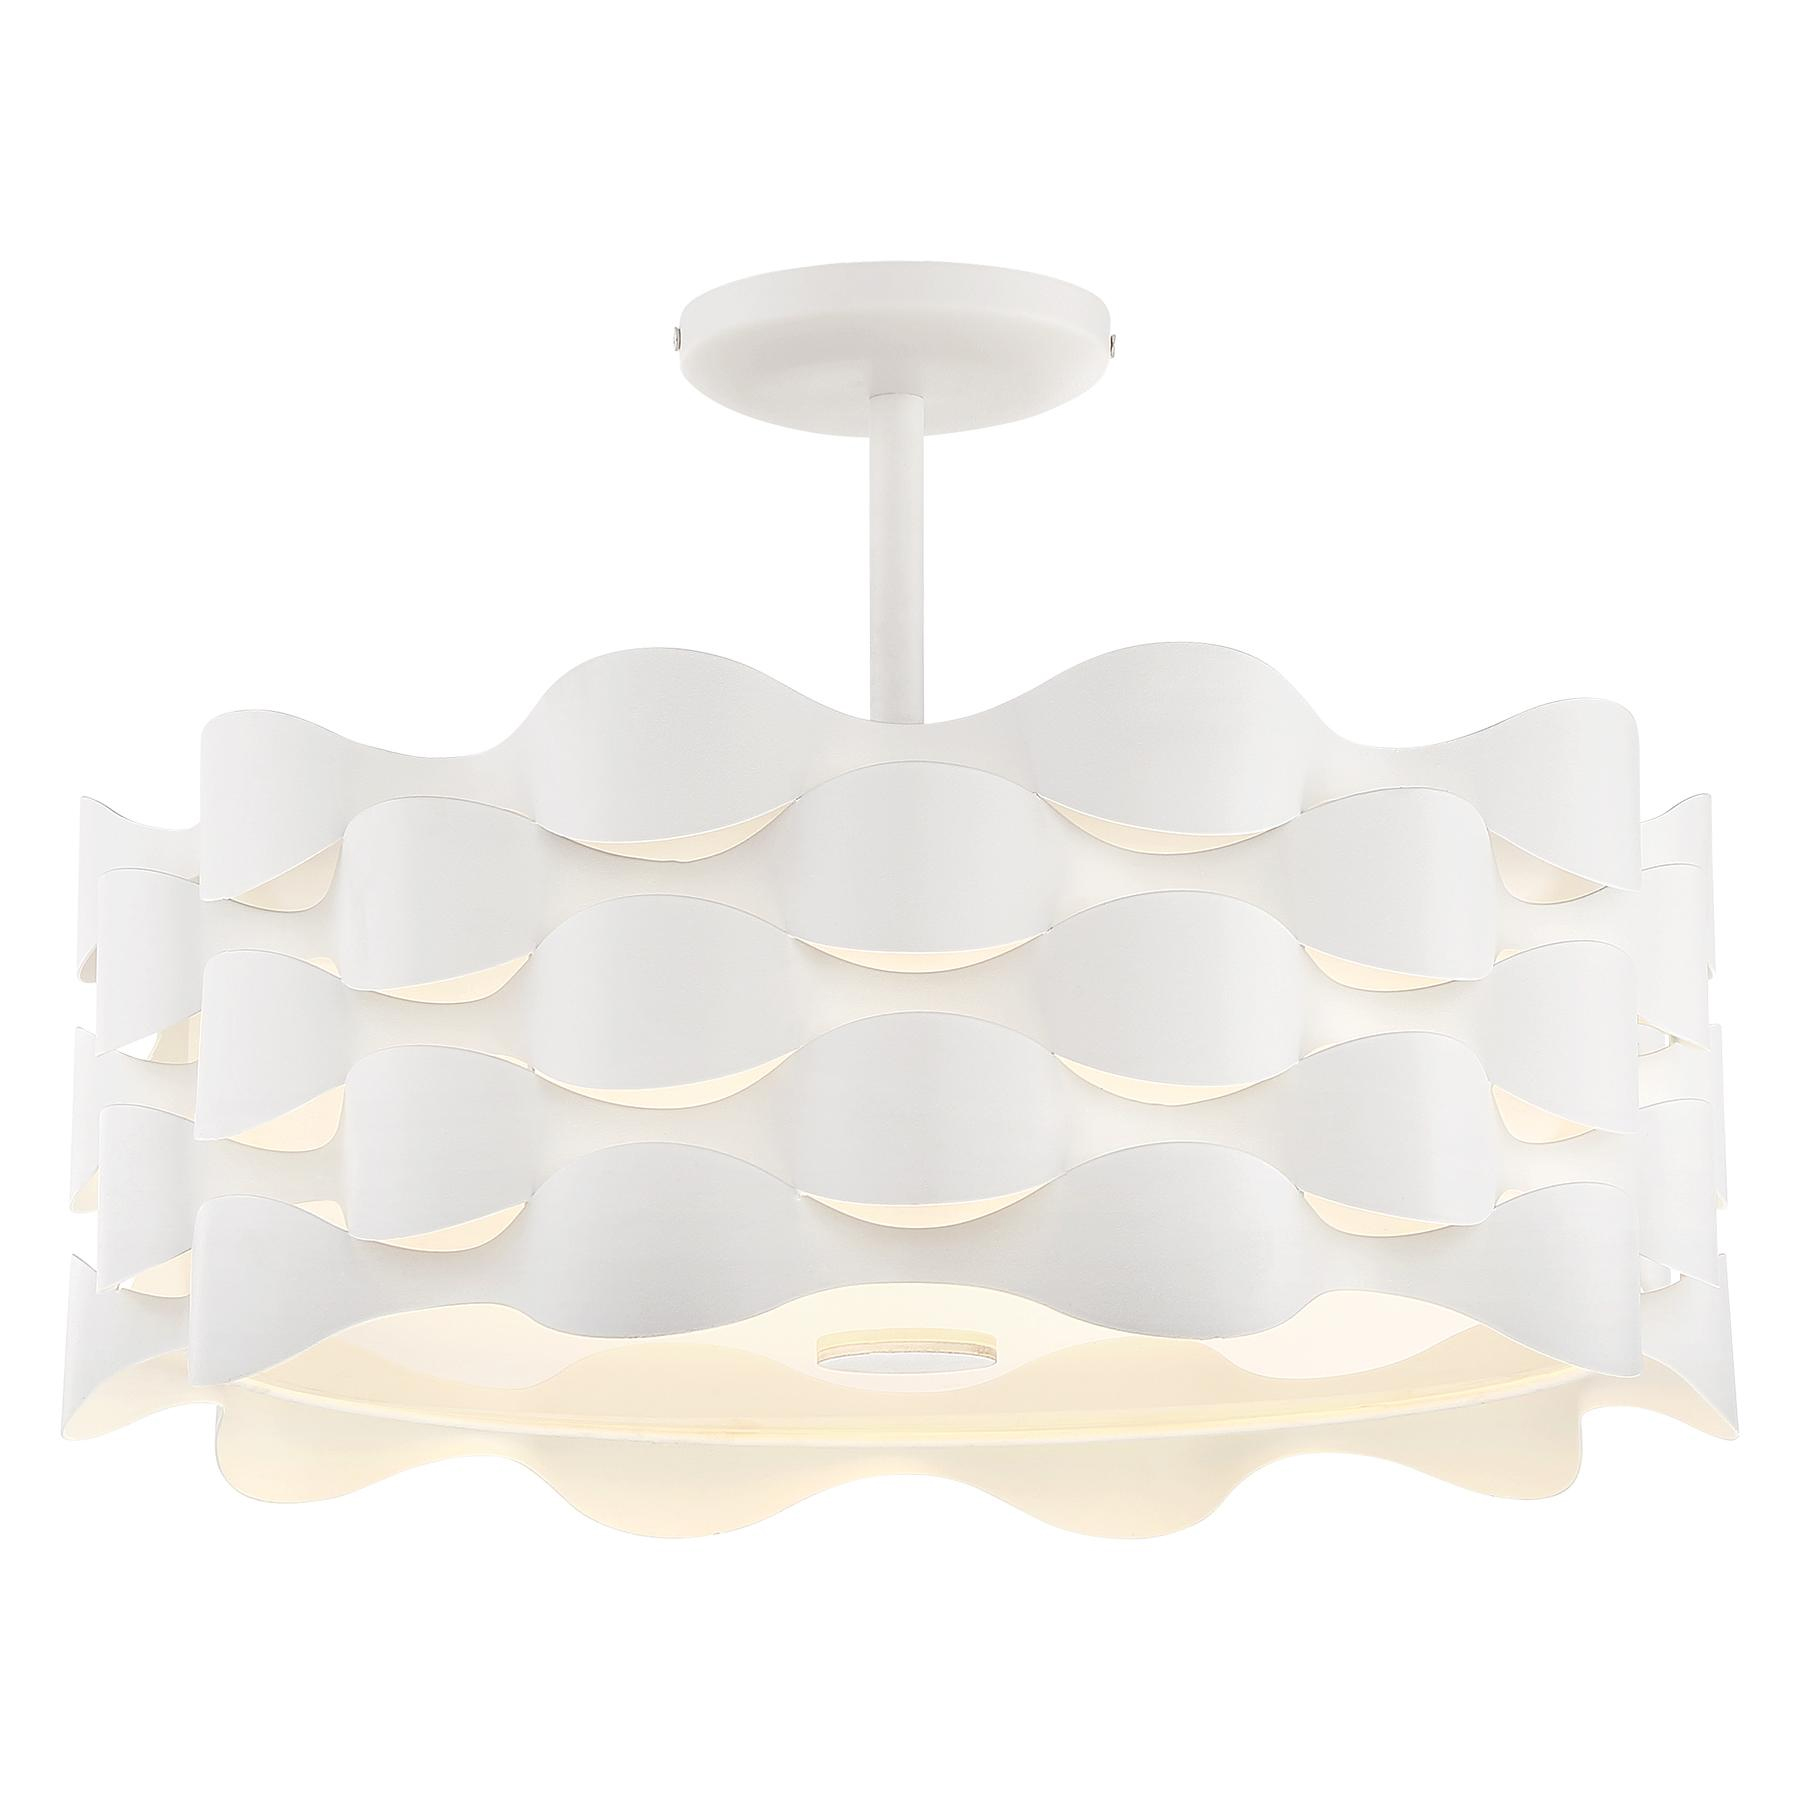 Beautiful Coastal Current Semi Flush Ceiling Light By George Kovacs | P1302 655 L